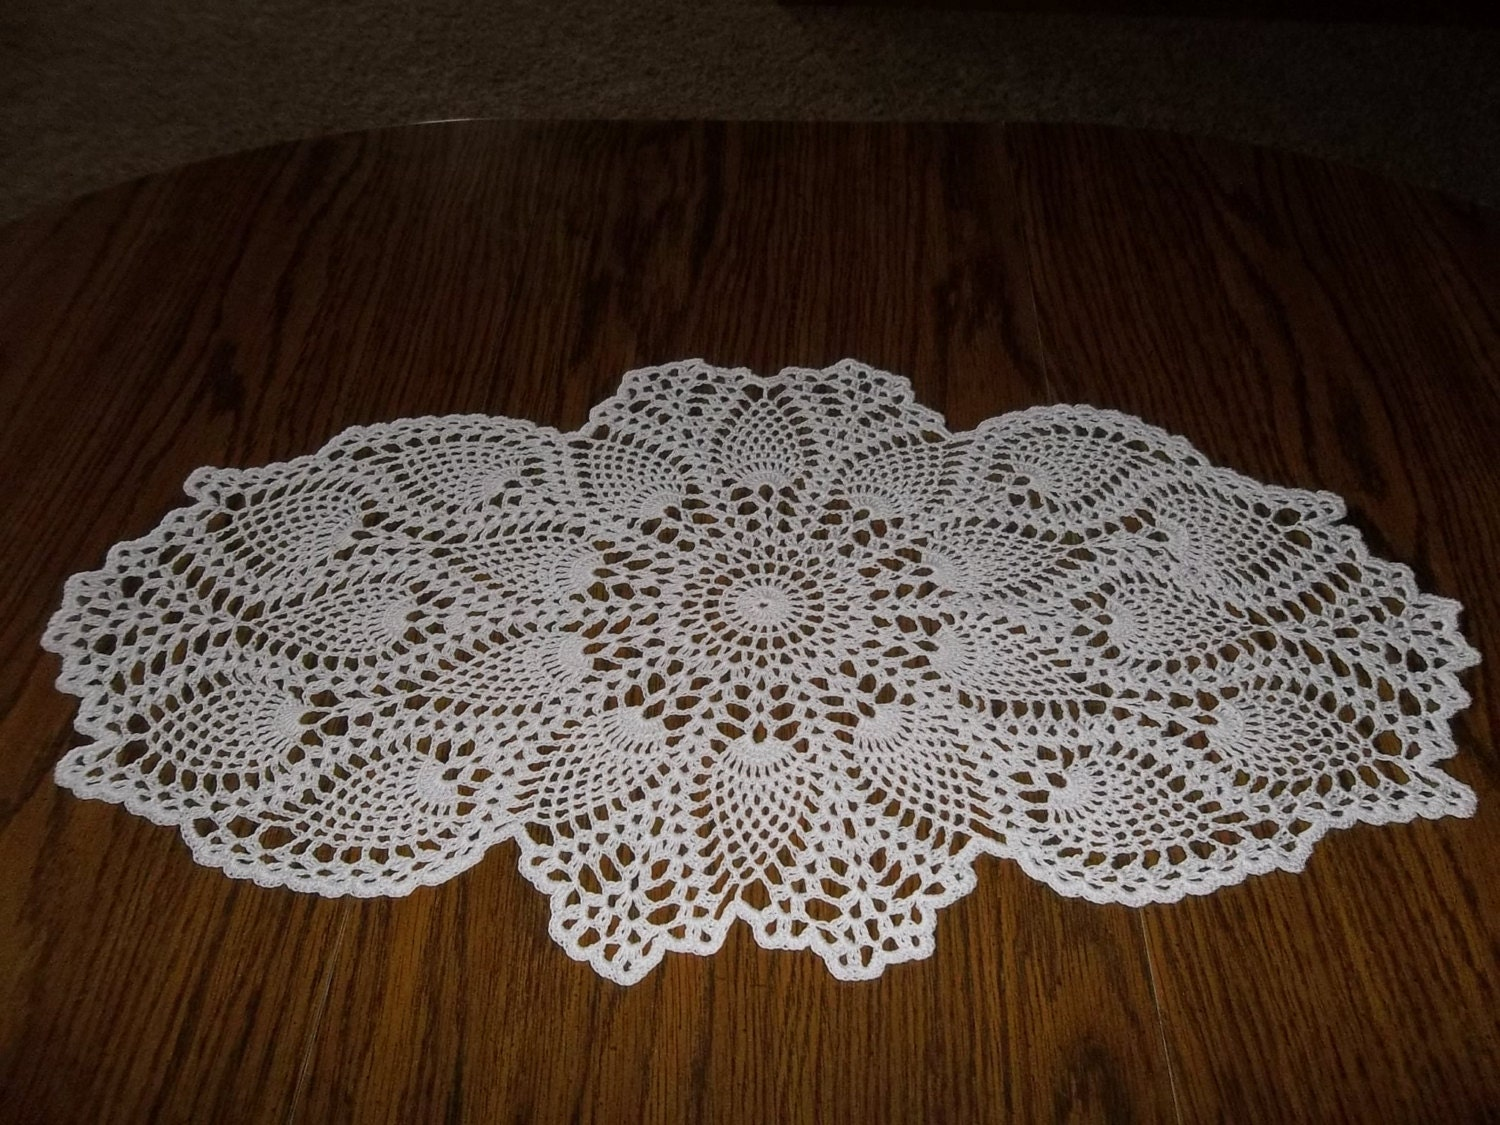 Crocheted Coffee Table Runner White In Color